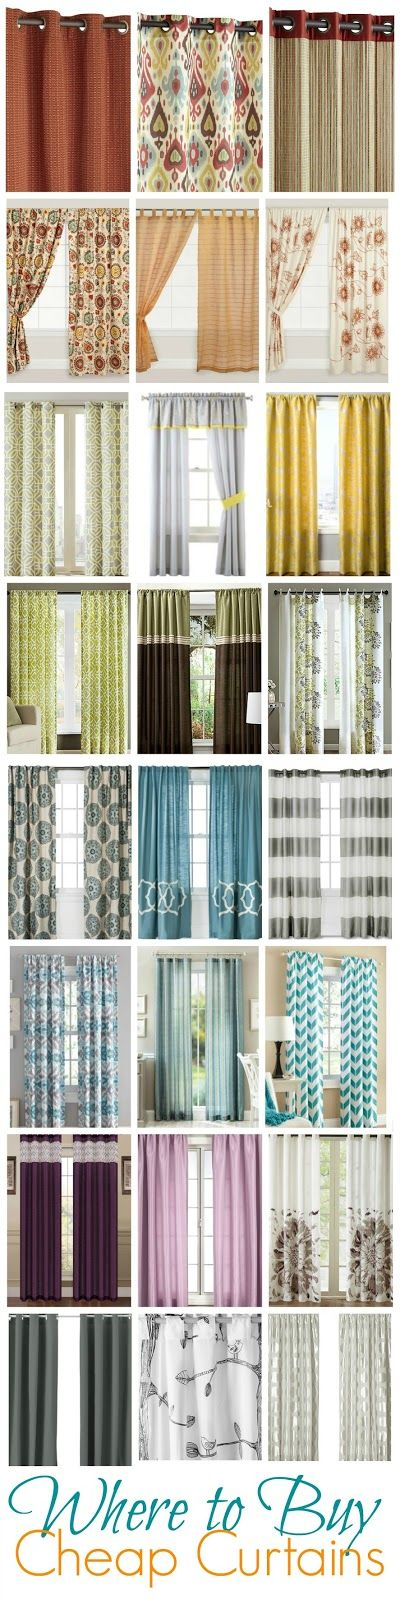 25 Best Ideas About Where To Buy Curtains On Pinterest